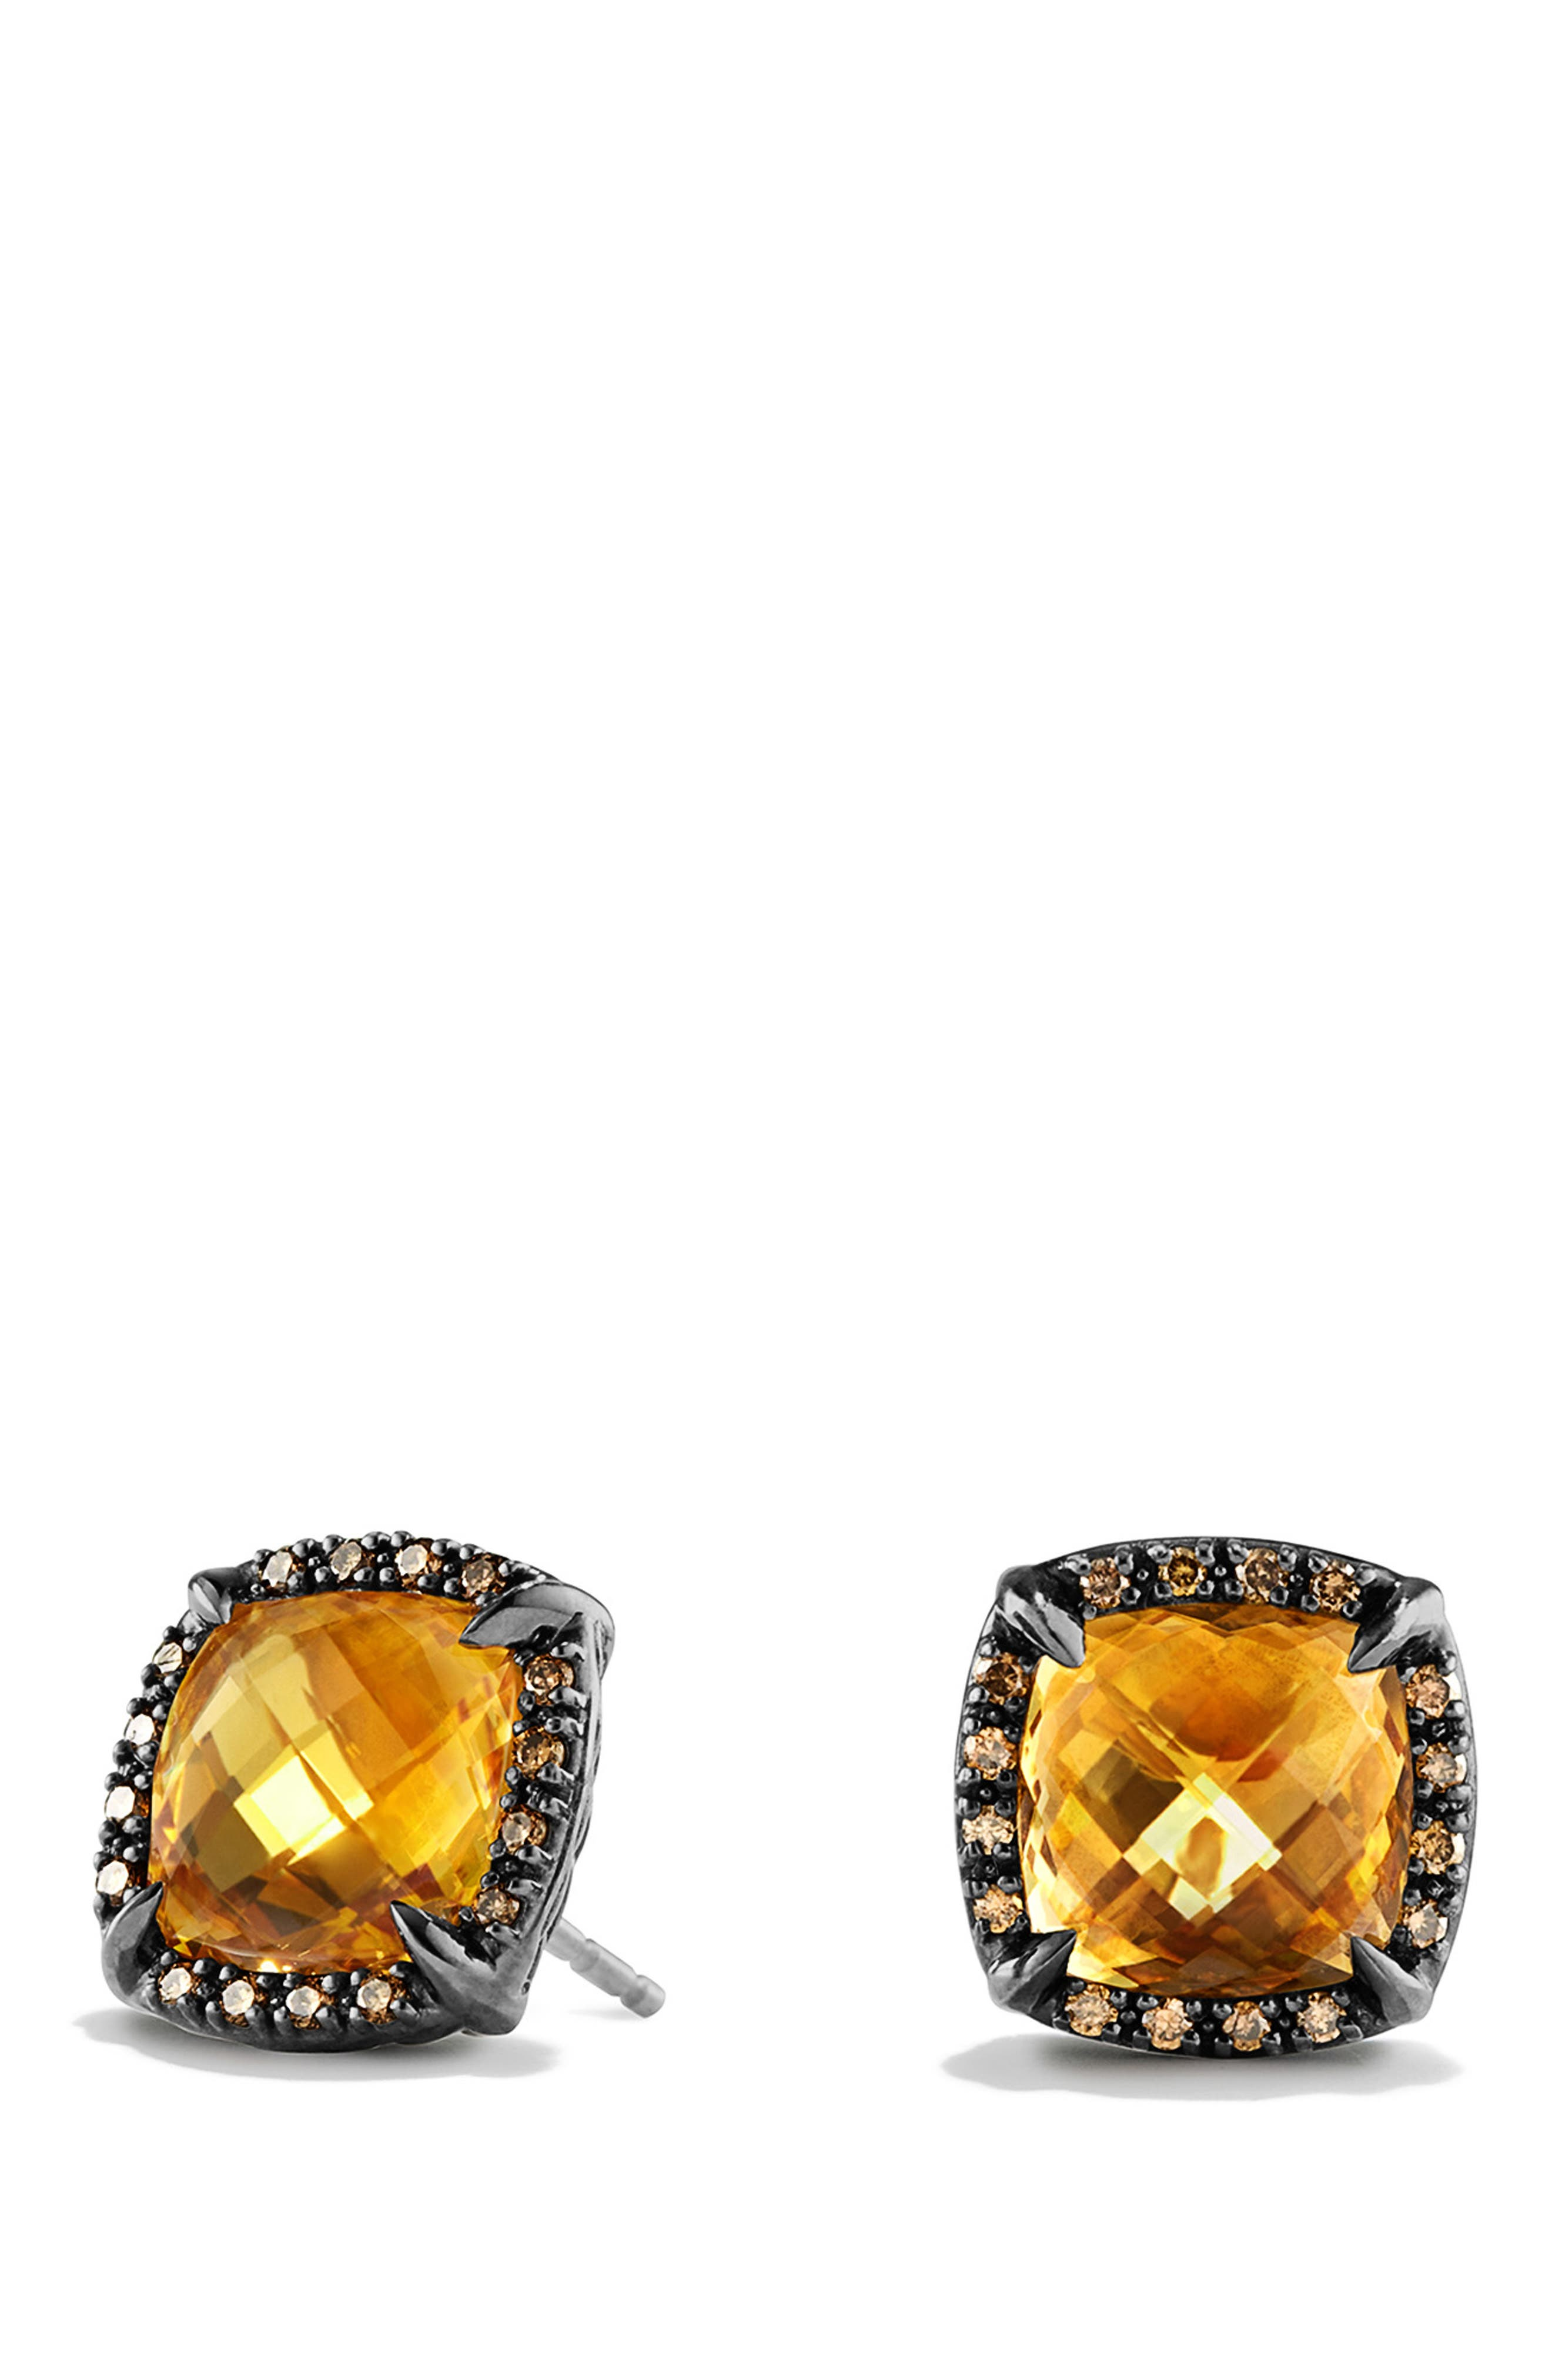 'Châtelaine' Earrings with Semiprecious Stone and Diamonds,                         Main,                         color, Citrine